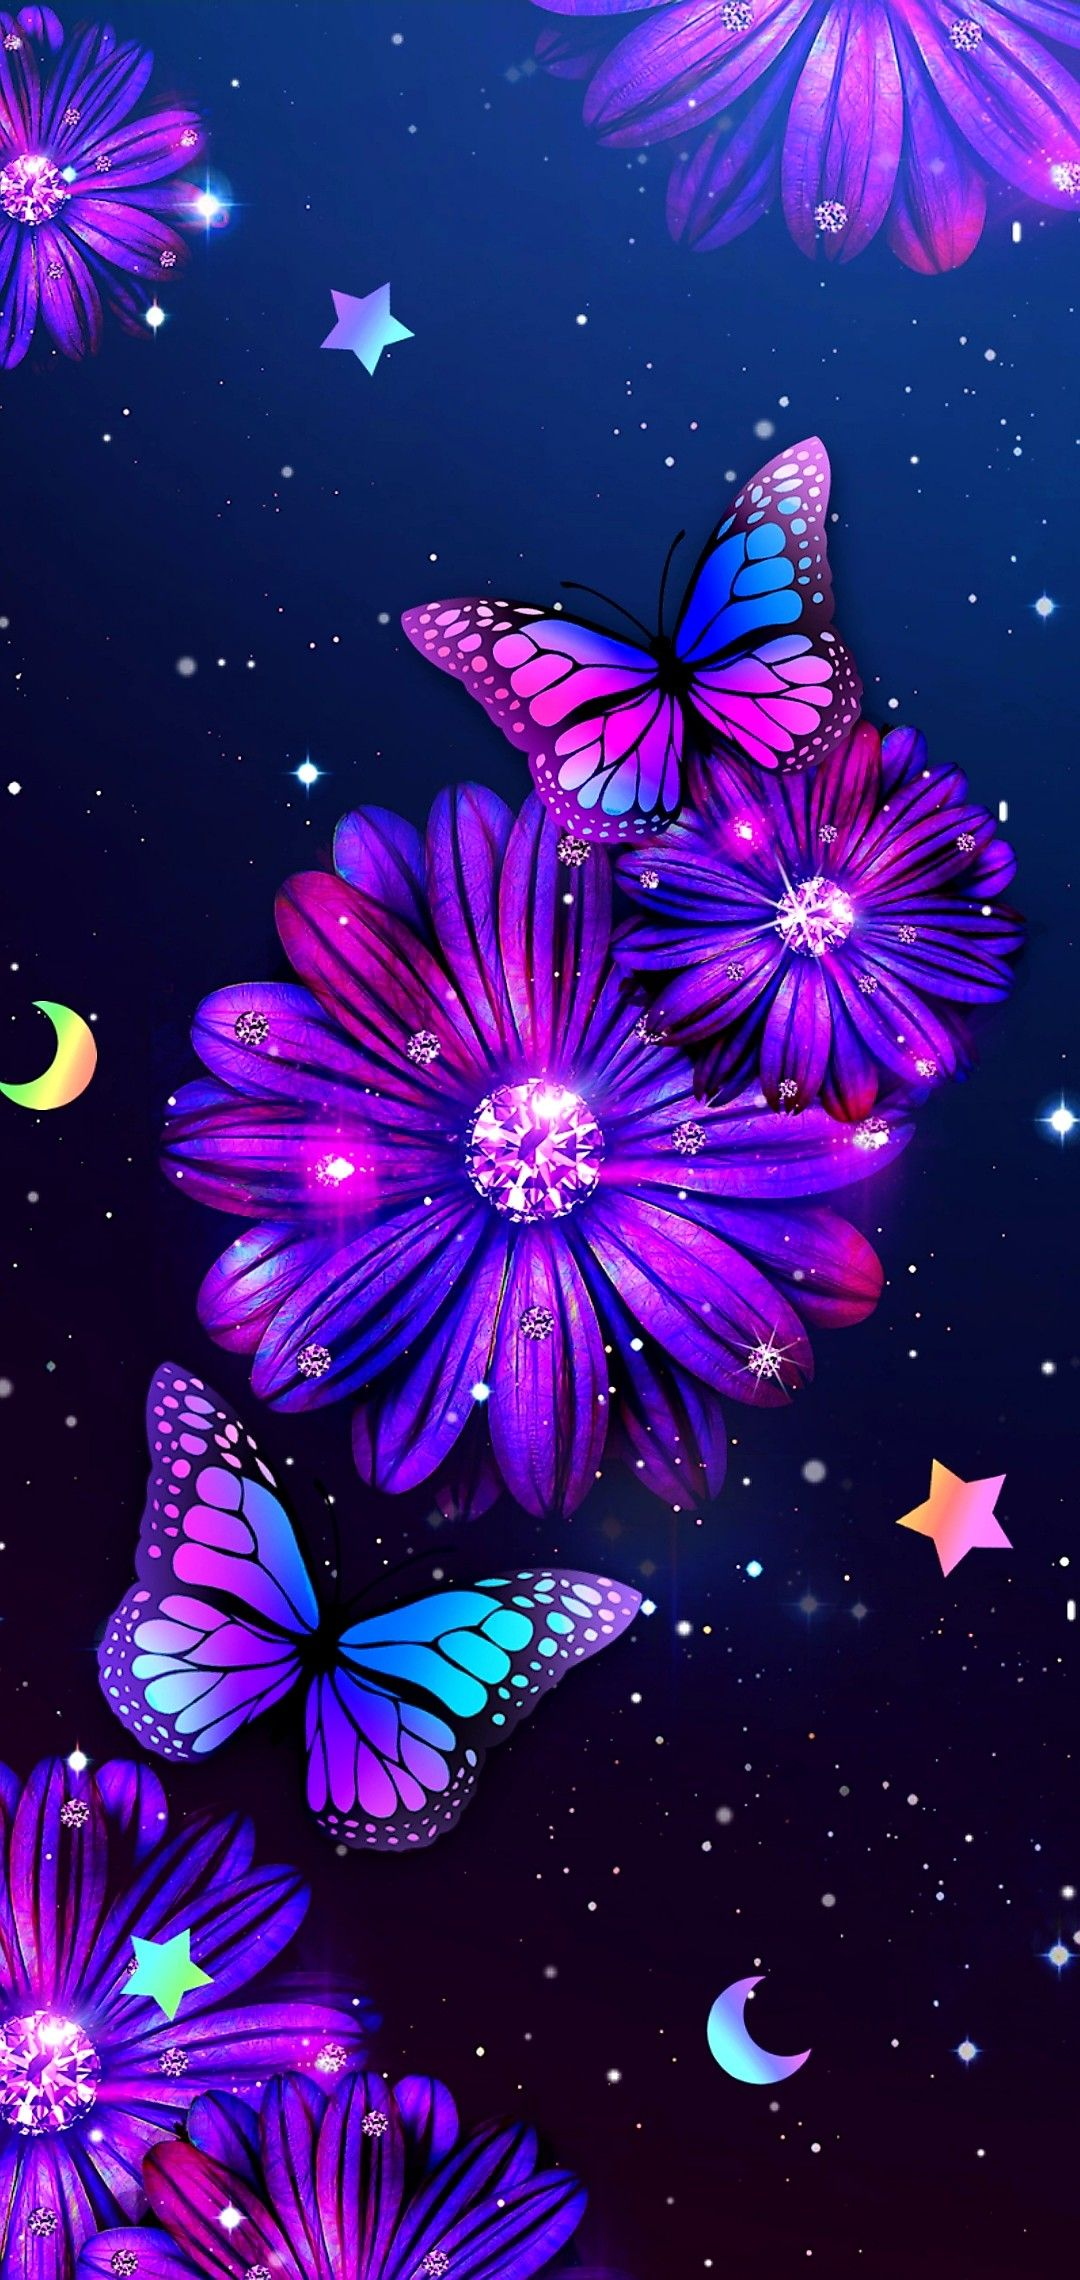 Flower Butterfly Butterfly Wallpaper Backgrounds Butterfly Wallpaper Iphone Sparkle Wallpaper